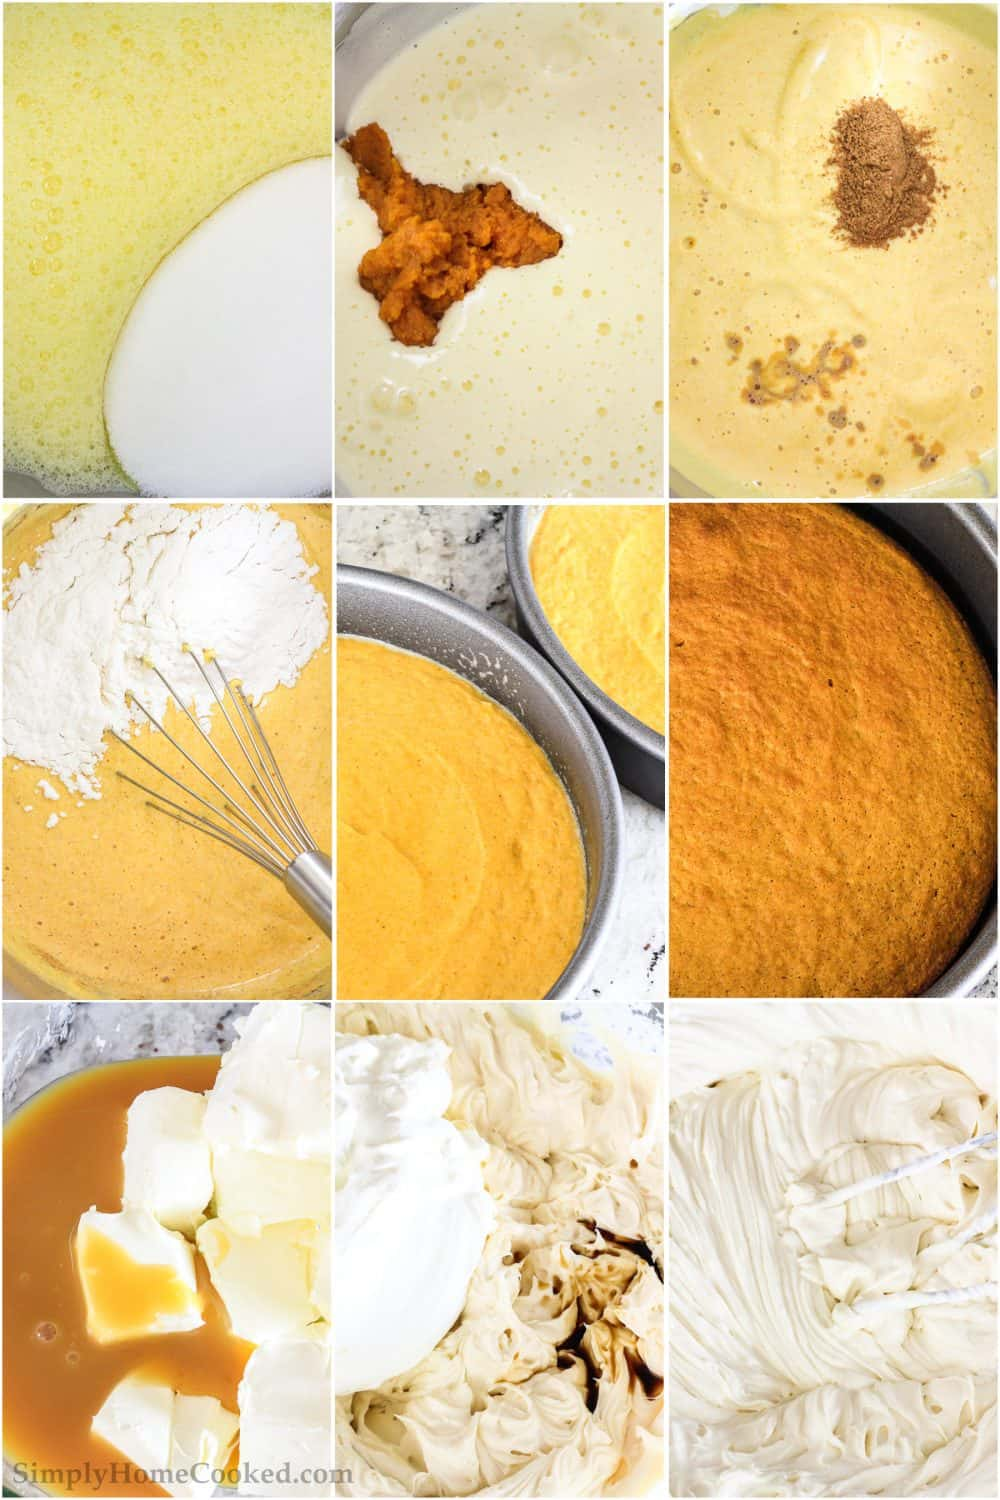 photo collage of steps on how to make pumpkin sponge cake, along with and easy homemade cream cheese frosting